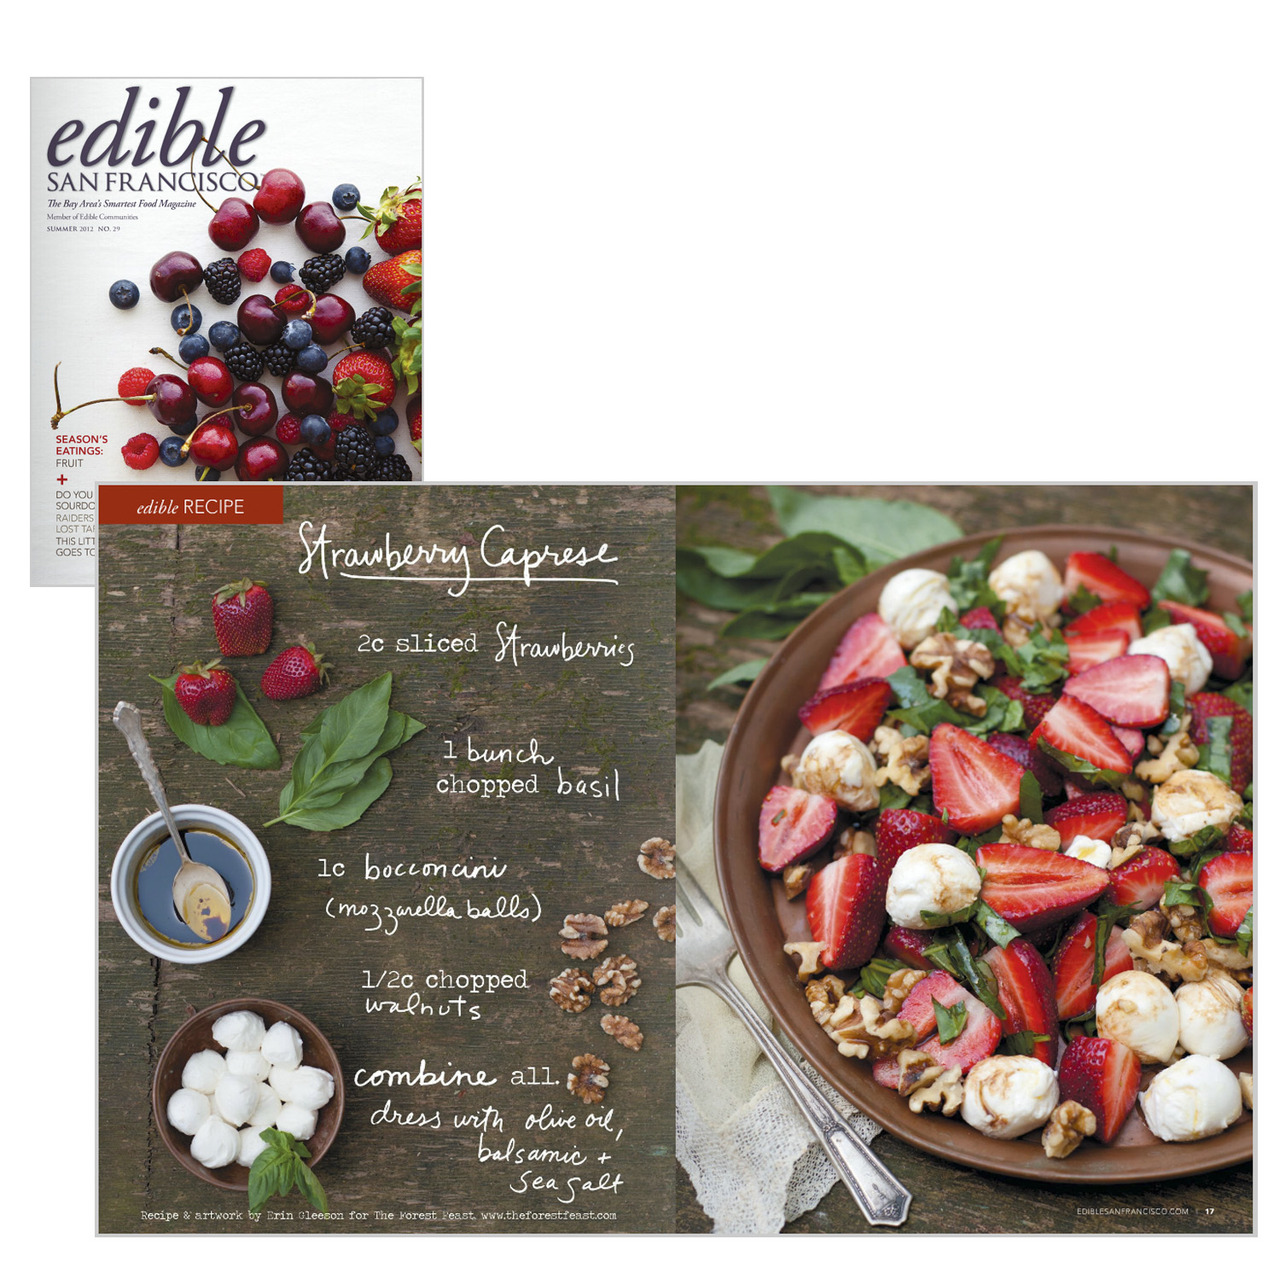 Very excited to have my  Strawberry Caprese  recipe featured as a double page spread in the current issue of  Edible San Francisco Magazine ! This salad is so simple and summery- try it with a glass of crisp, cold white wine. The magazine's Summer issue is fantastic- it hits the shelves early next week, but in the meantime you can see the online version  here .  Strawberry Caprese photos, recipe and illustration by Erin Gleeson for  The Forest Feast   Edible Magazine cover image (top left, berries & cherries) by  Kimberley Hasselbrink